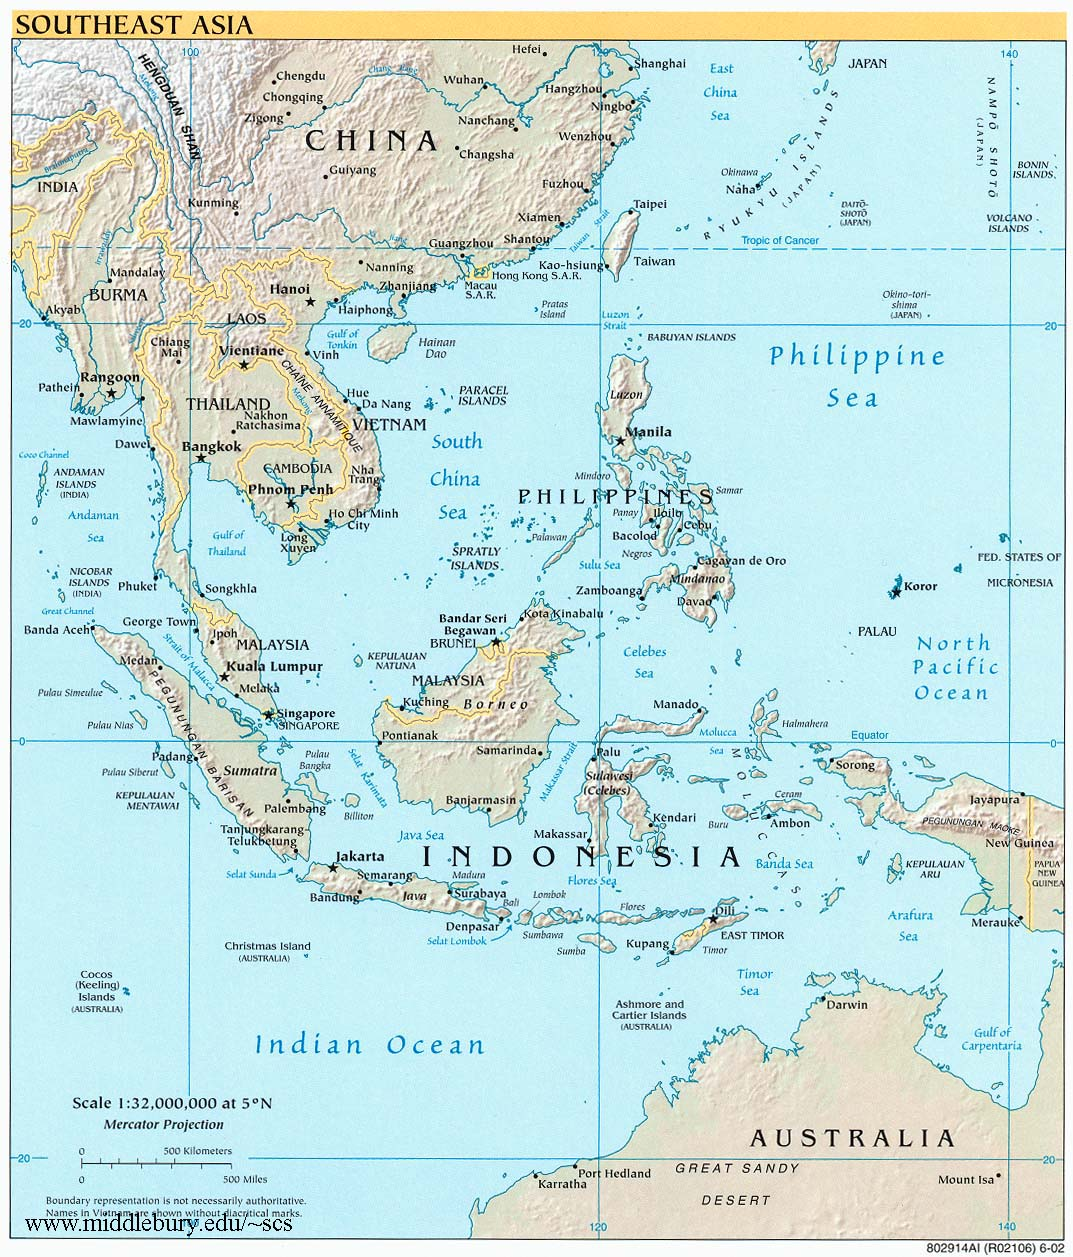 This map shows at least three areas of concern for those alert to maritime risks. The East China Sea where China and Japan dispute strategically located islands and the resources they can claim if they retain control of the islands, the South China Sea where China and her neighbors to the south all have competing claims to the resources of the sea, including especially energy;  and then the Strait of Malacca and the waters around Malayasia, Singapore and Indonesia where SE Asian piracy has waxed and waned. Maritime risks in Asia are not to be underestimated, if only because over 60% of merchant marine tonnage is owned by Asians, while China and her neighbors are engaged in high stakes claim and counter-claim to resources needed to fuel their economies. Any one of the three risks by itself would be enough negatively to impact economic growth in the area.